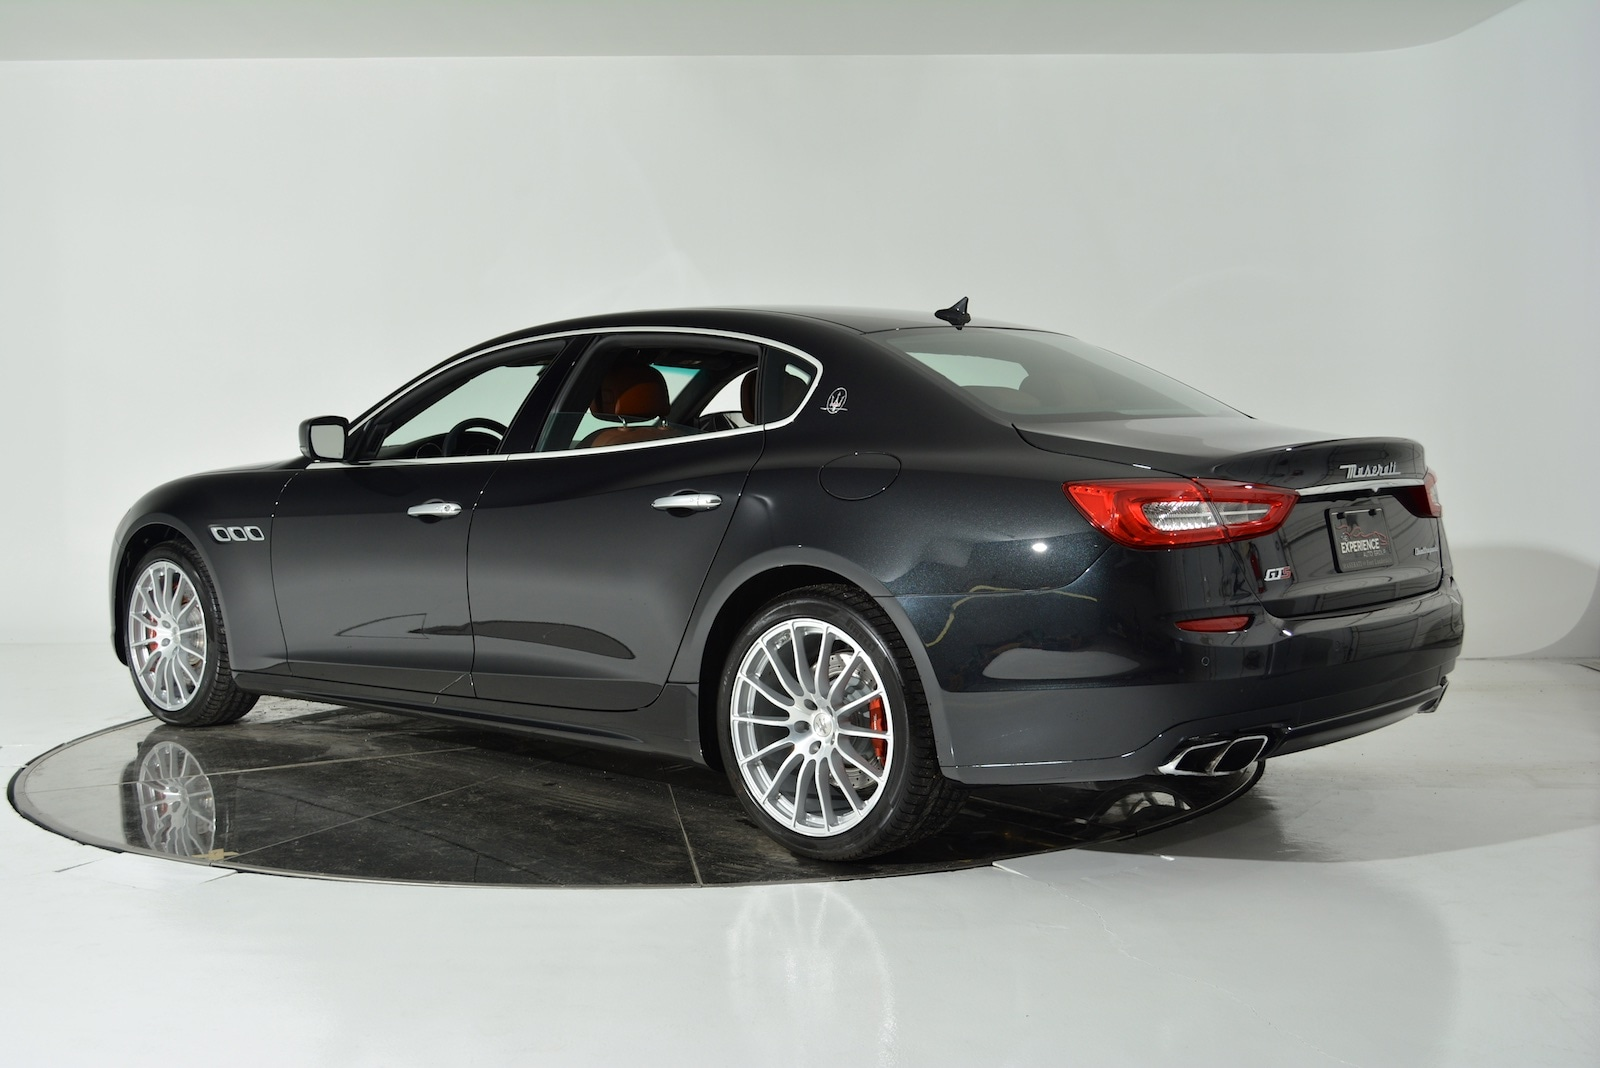 New 2015 Maserati Quattroporte Gts For Sale Fort